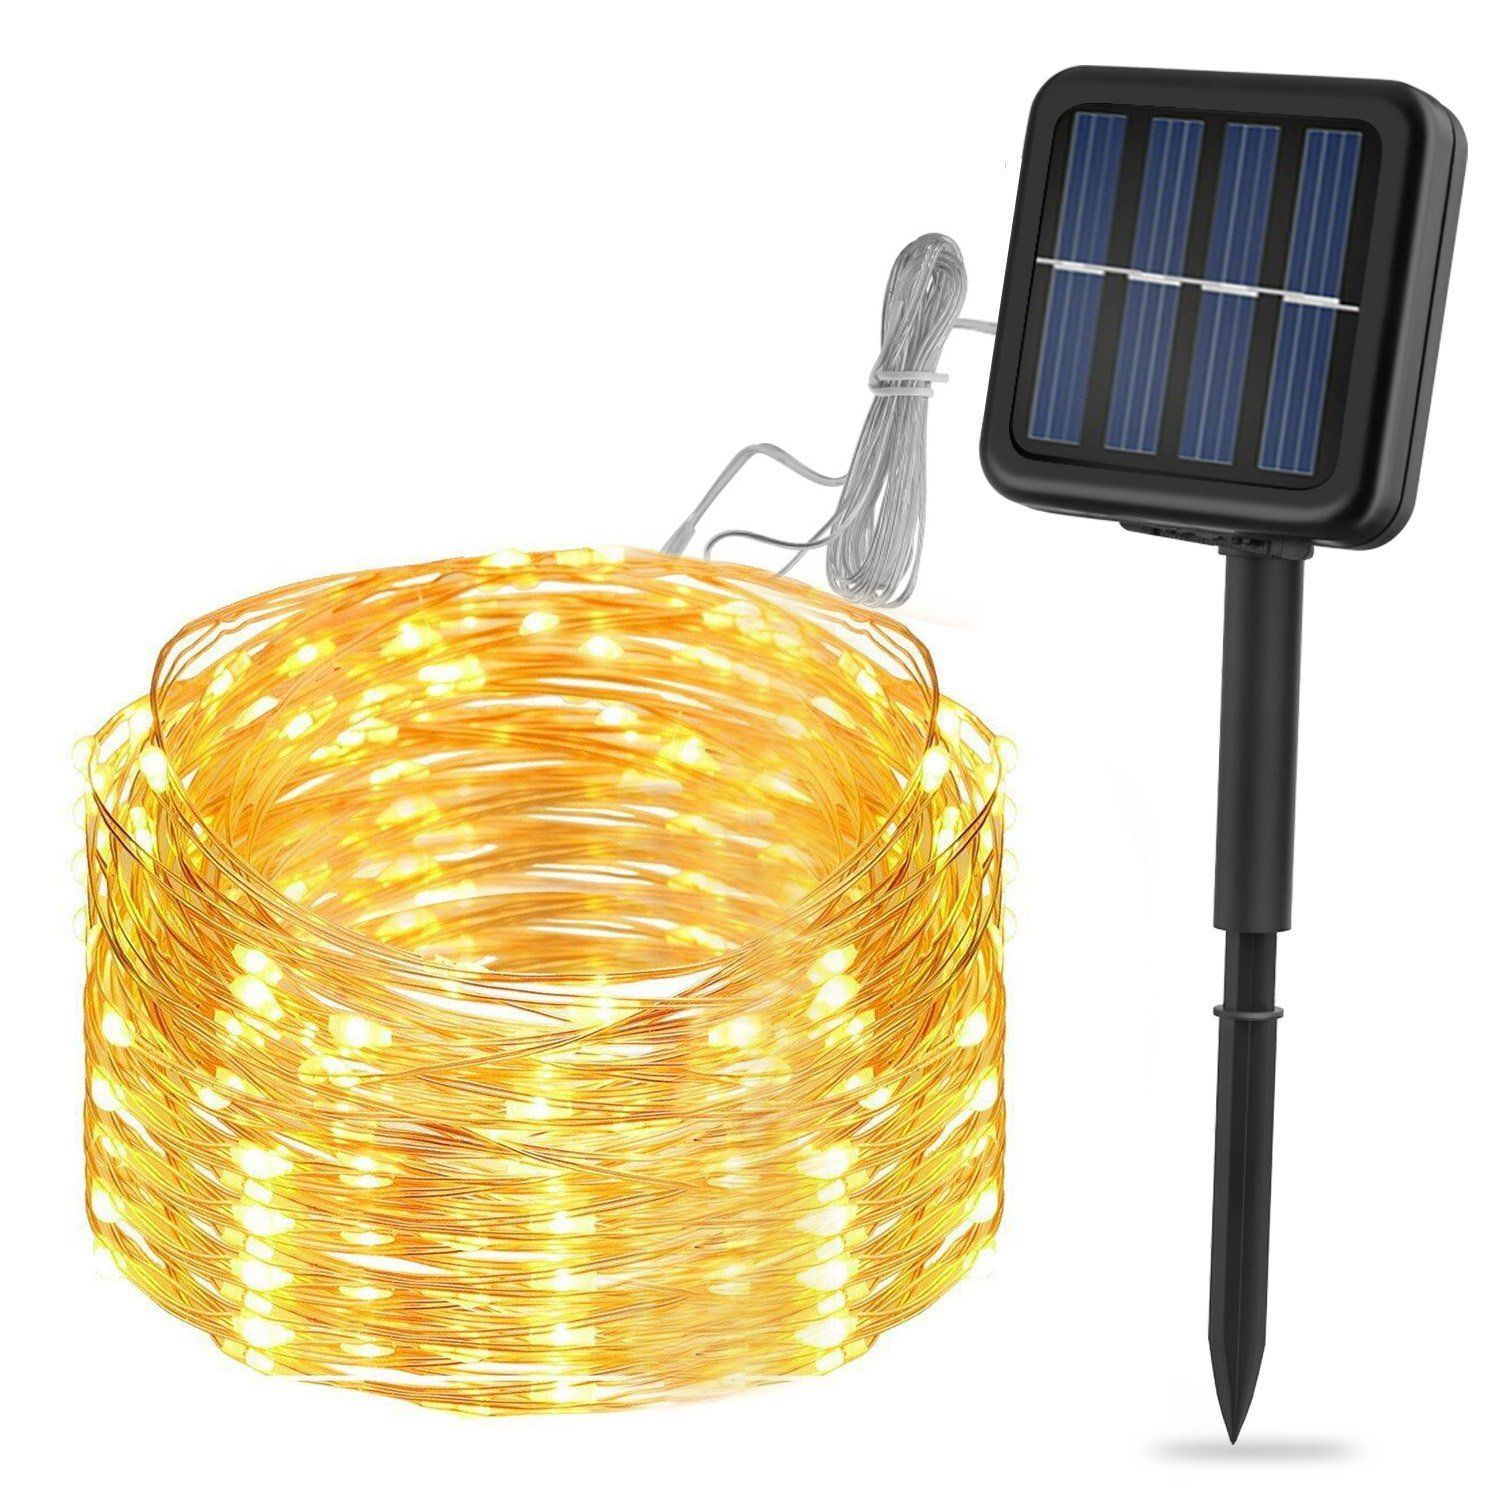 Solar 100 LED String Light Garden Path Yard Decor Lamp Outdoor Party Waterproof